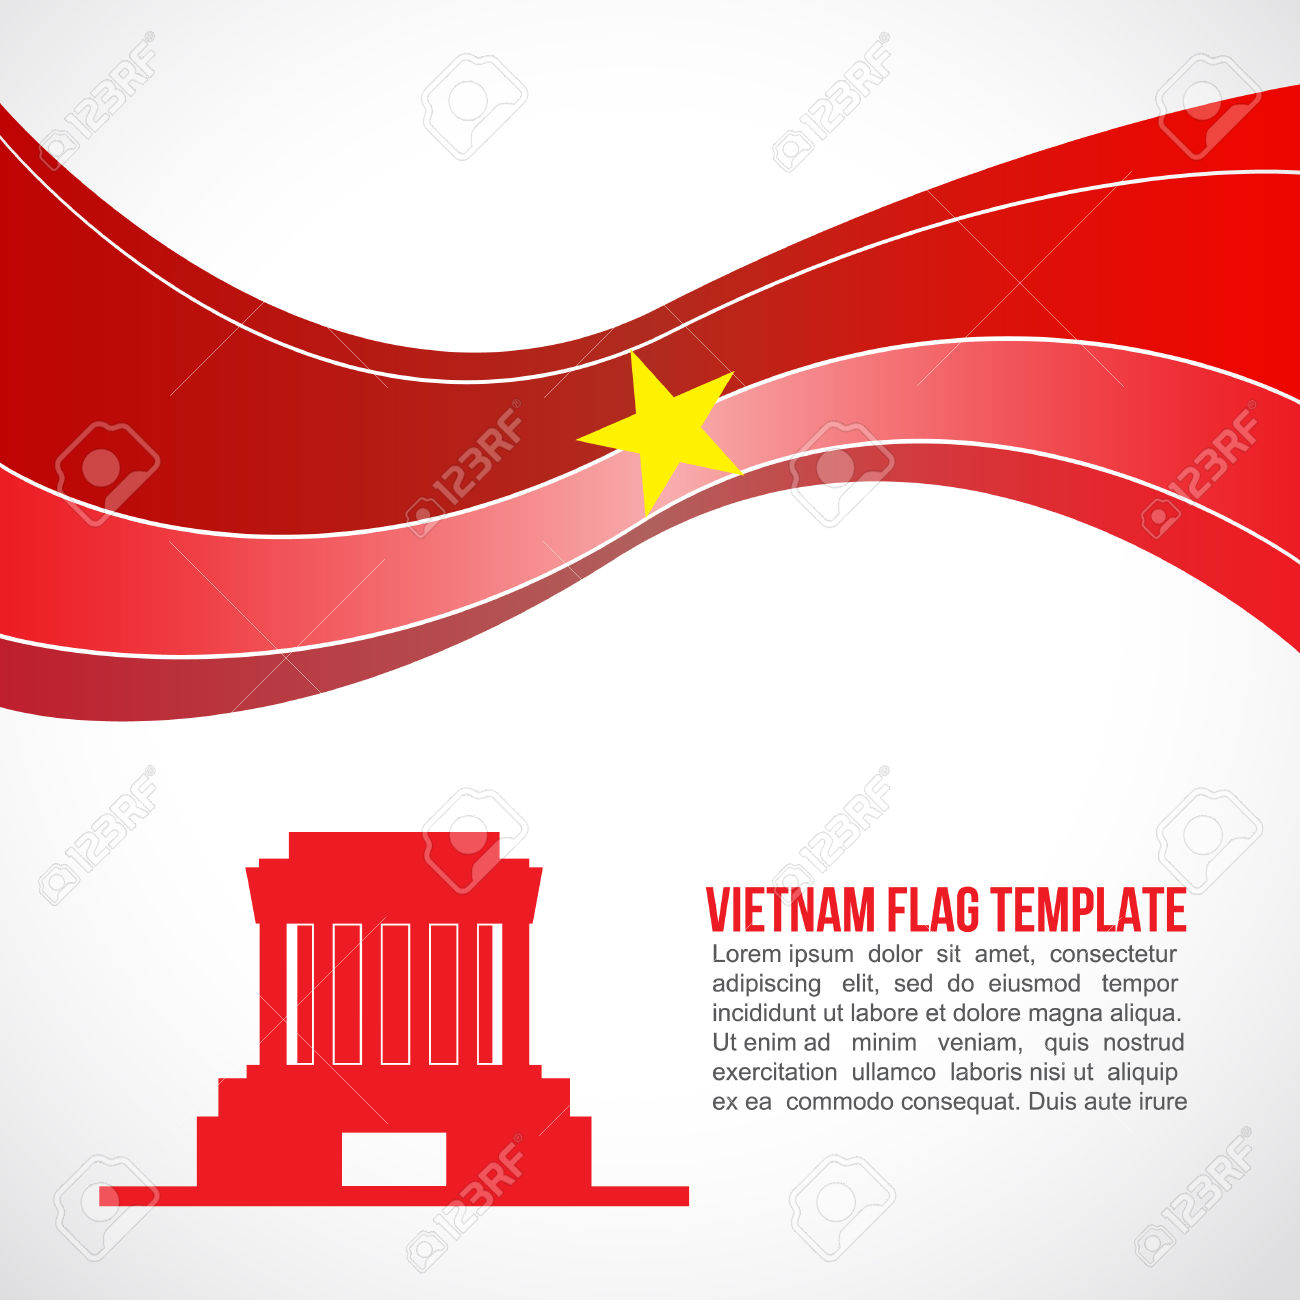 89 Ho Chi Minh City Stock Illustrations, Cliparts And Royalty Free.